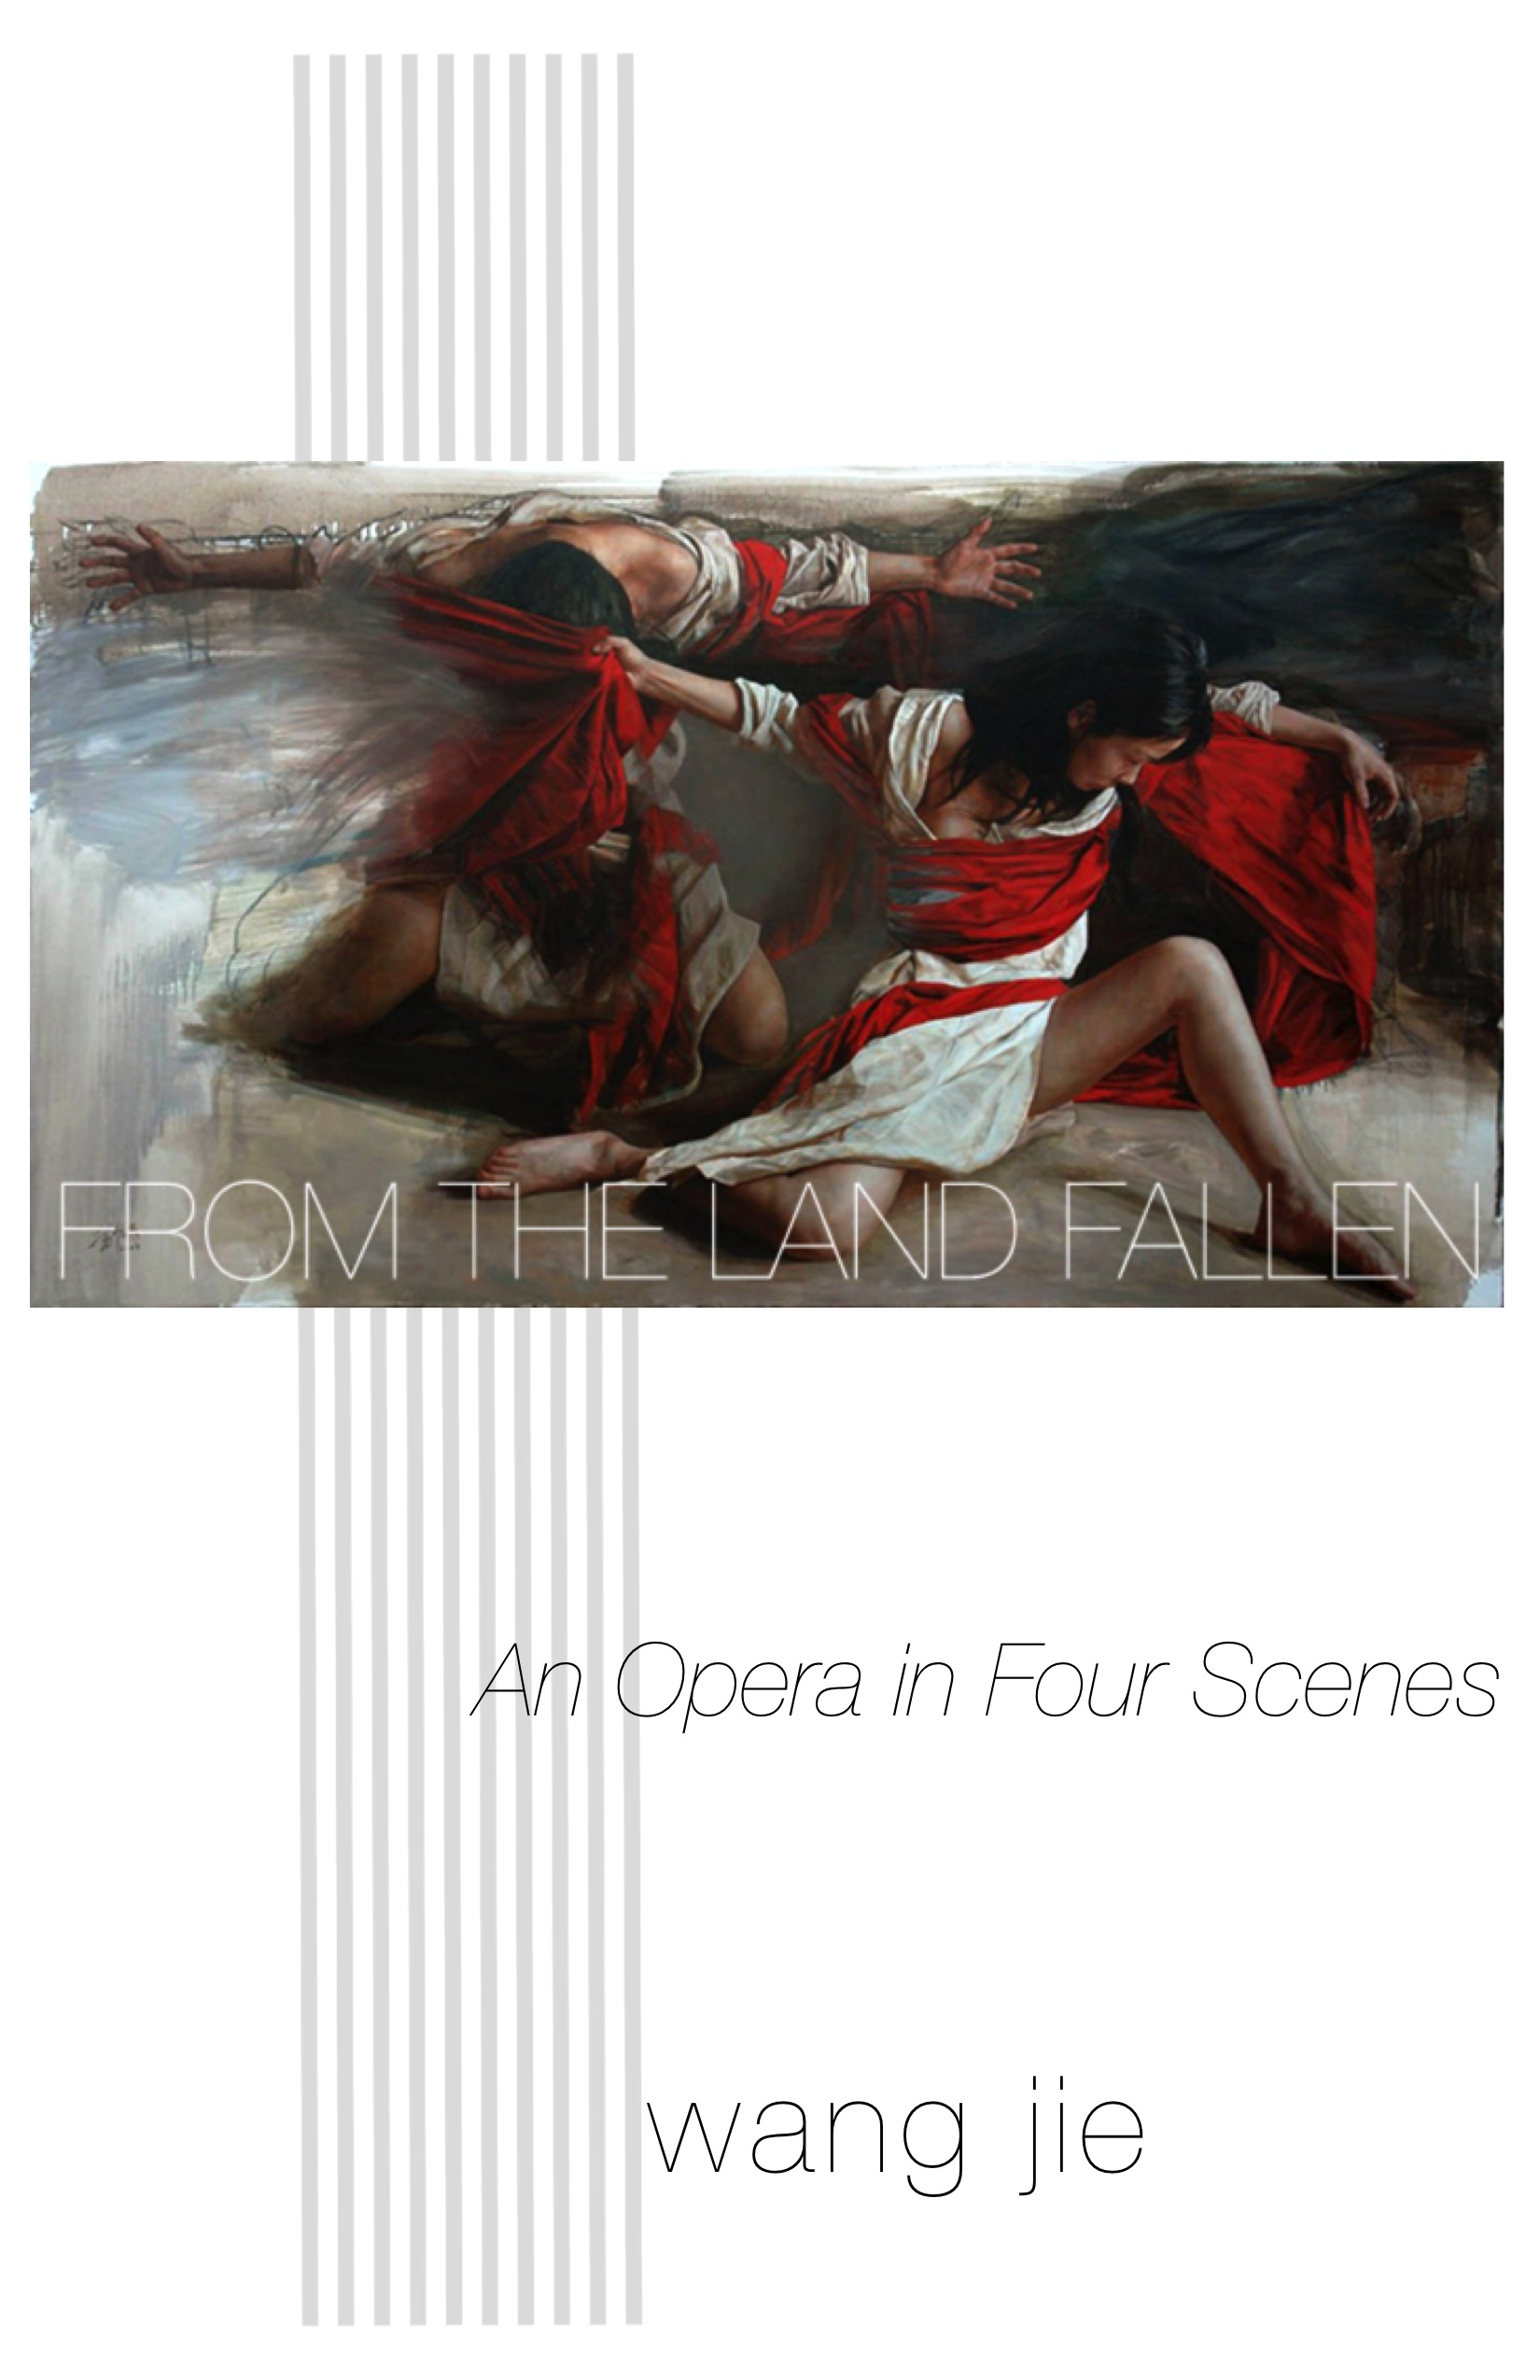 00From the land fallen_score cover